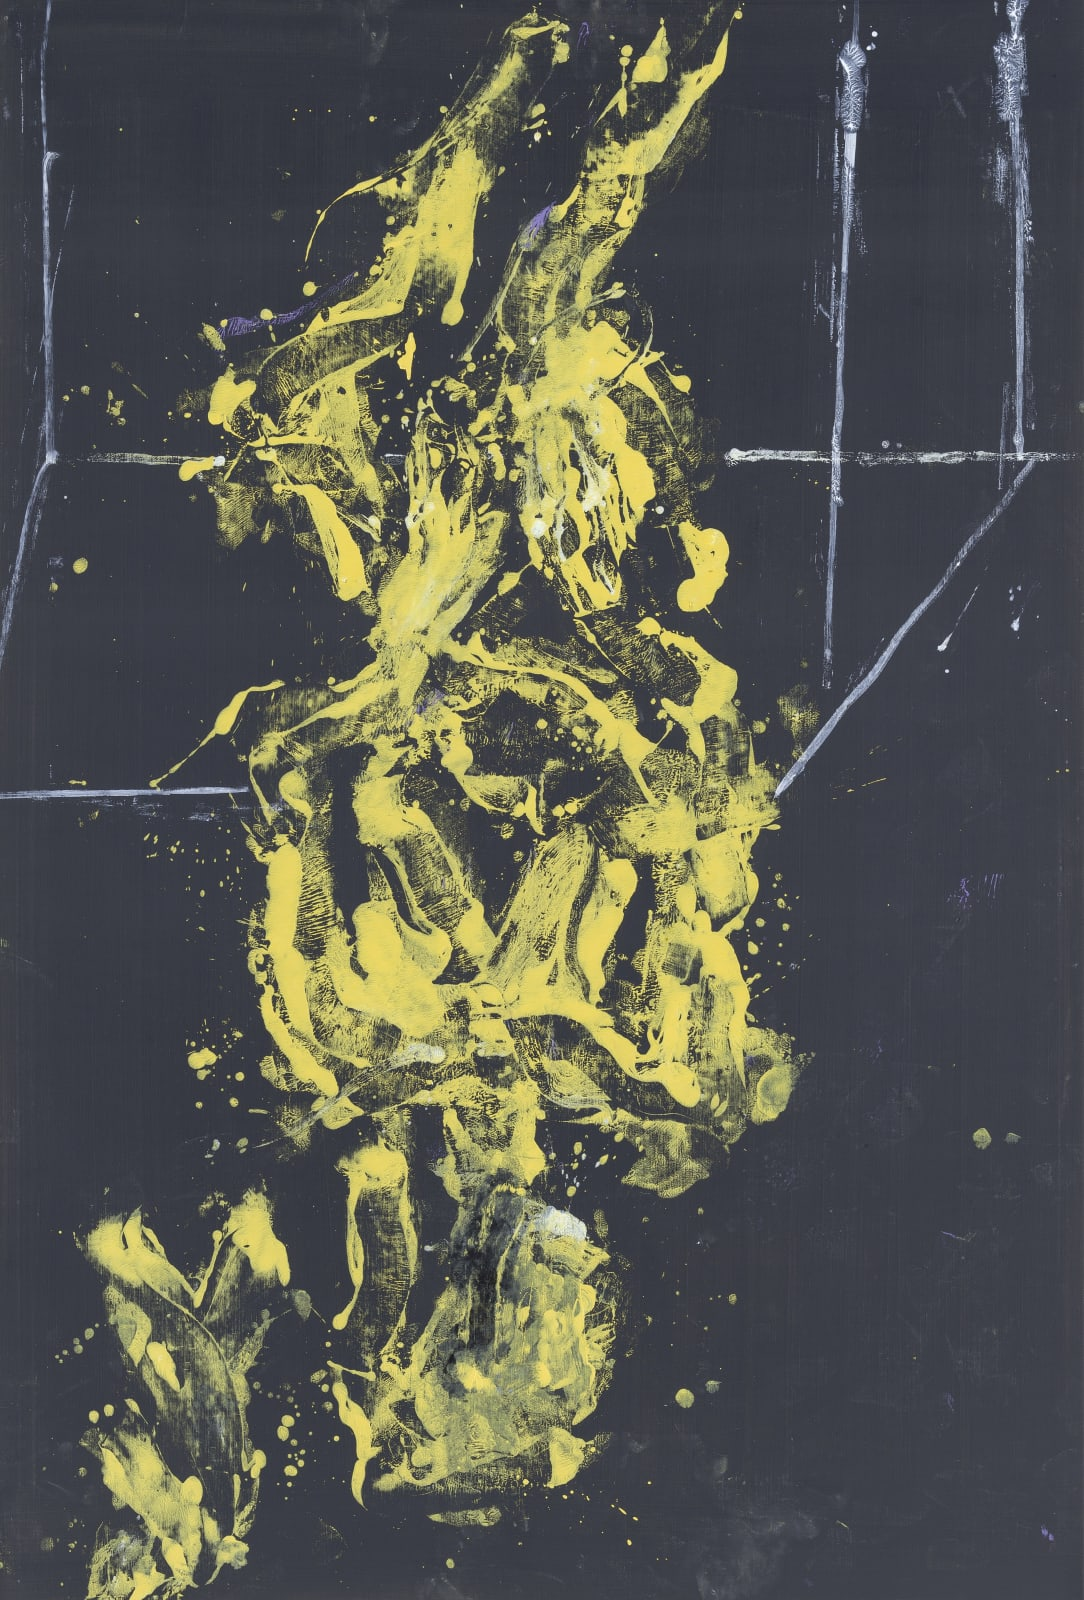 """<a href=""""/content/feature/630/detail/artworks12496/"""" class=""""pageload-link-type-popup-enabled-content""""><div class=""""artist"""">Georg Baselitz</div><div class=""""title_and_year""""><span class=""""title"""">Bei Vollmond</span><span class=""""year"""">, 2020</span></div><div class=""""medium"""">Oil on canvas</div><div class=""""dimensions"""">250 x 170 cm (98.4 x 66.9 inches)</div></a>"""